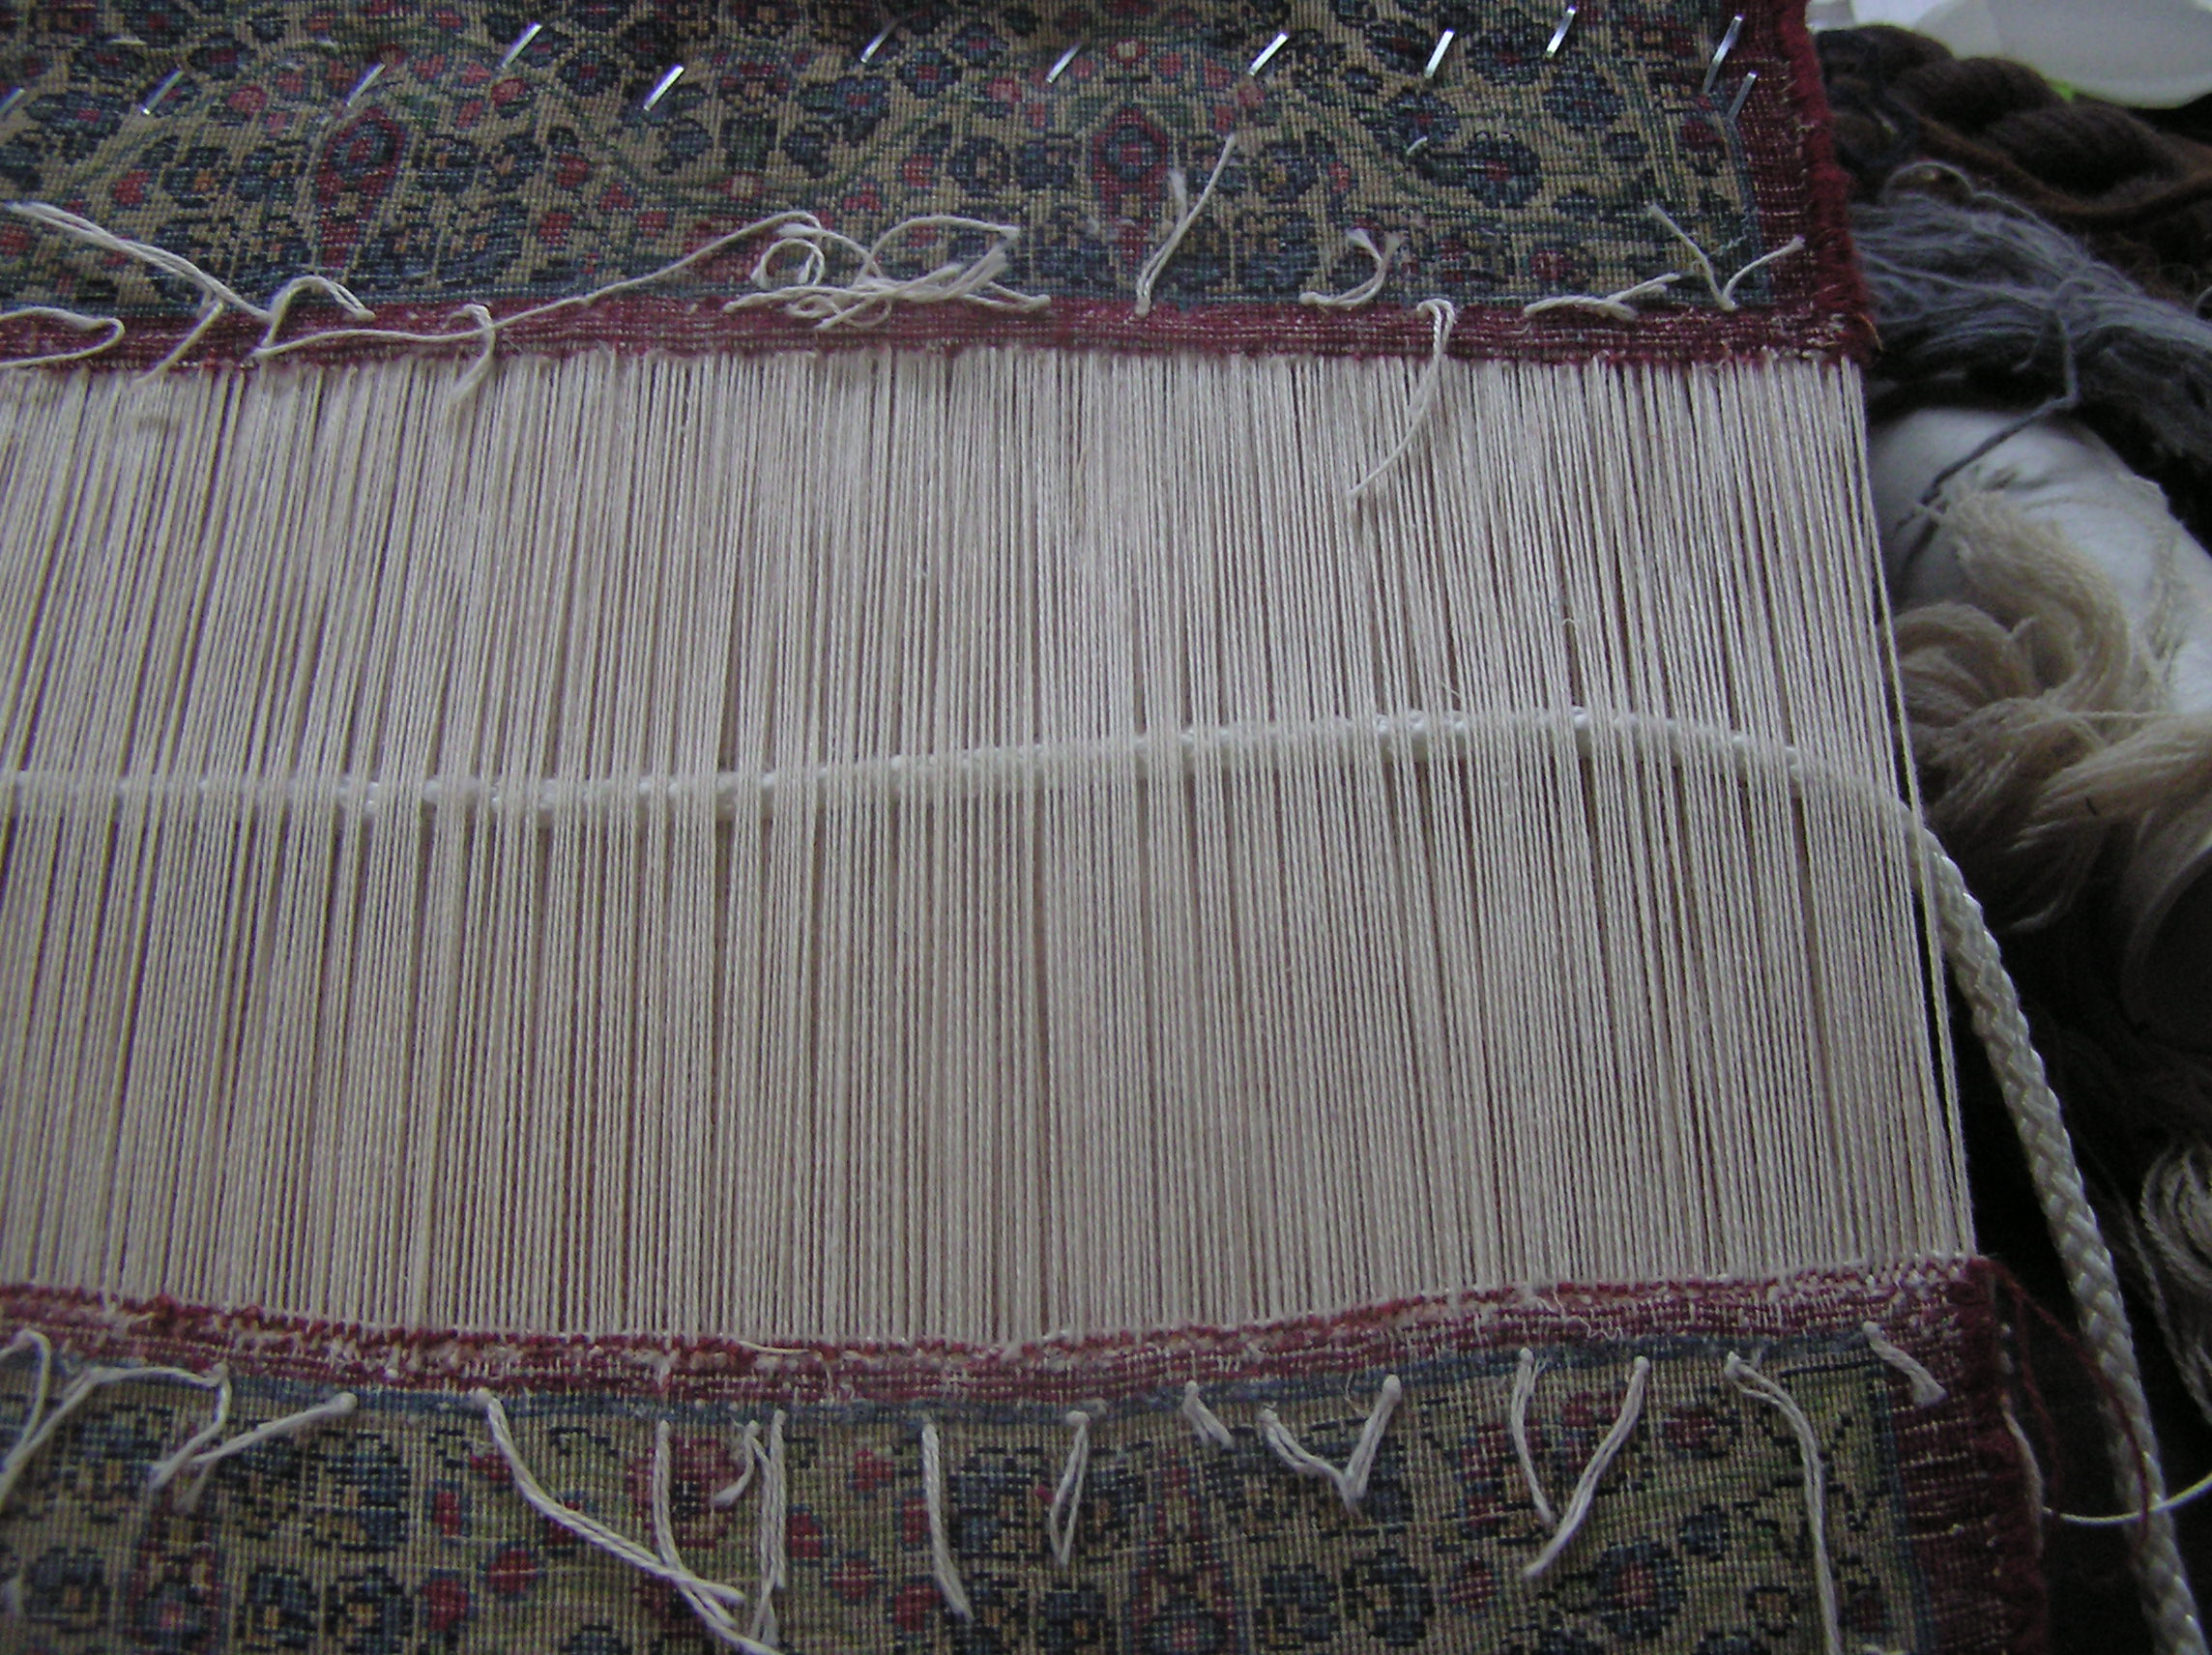 Reconstruction of the fringe requires a technique called sarbafi as shown here.